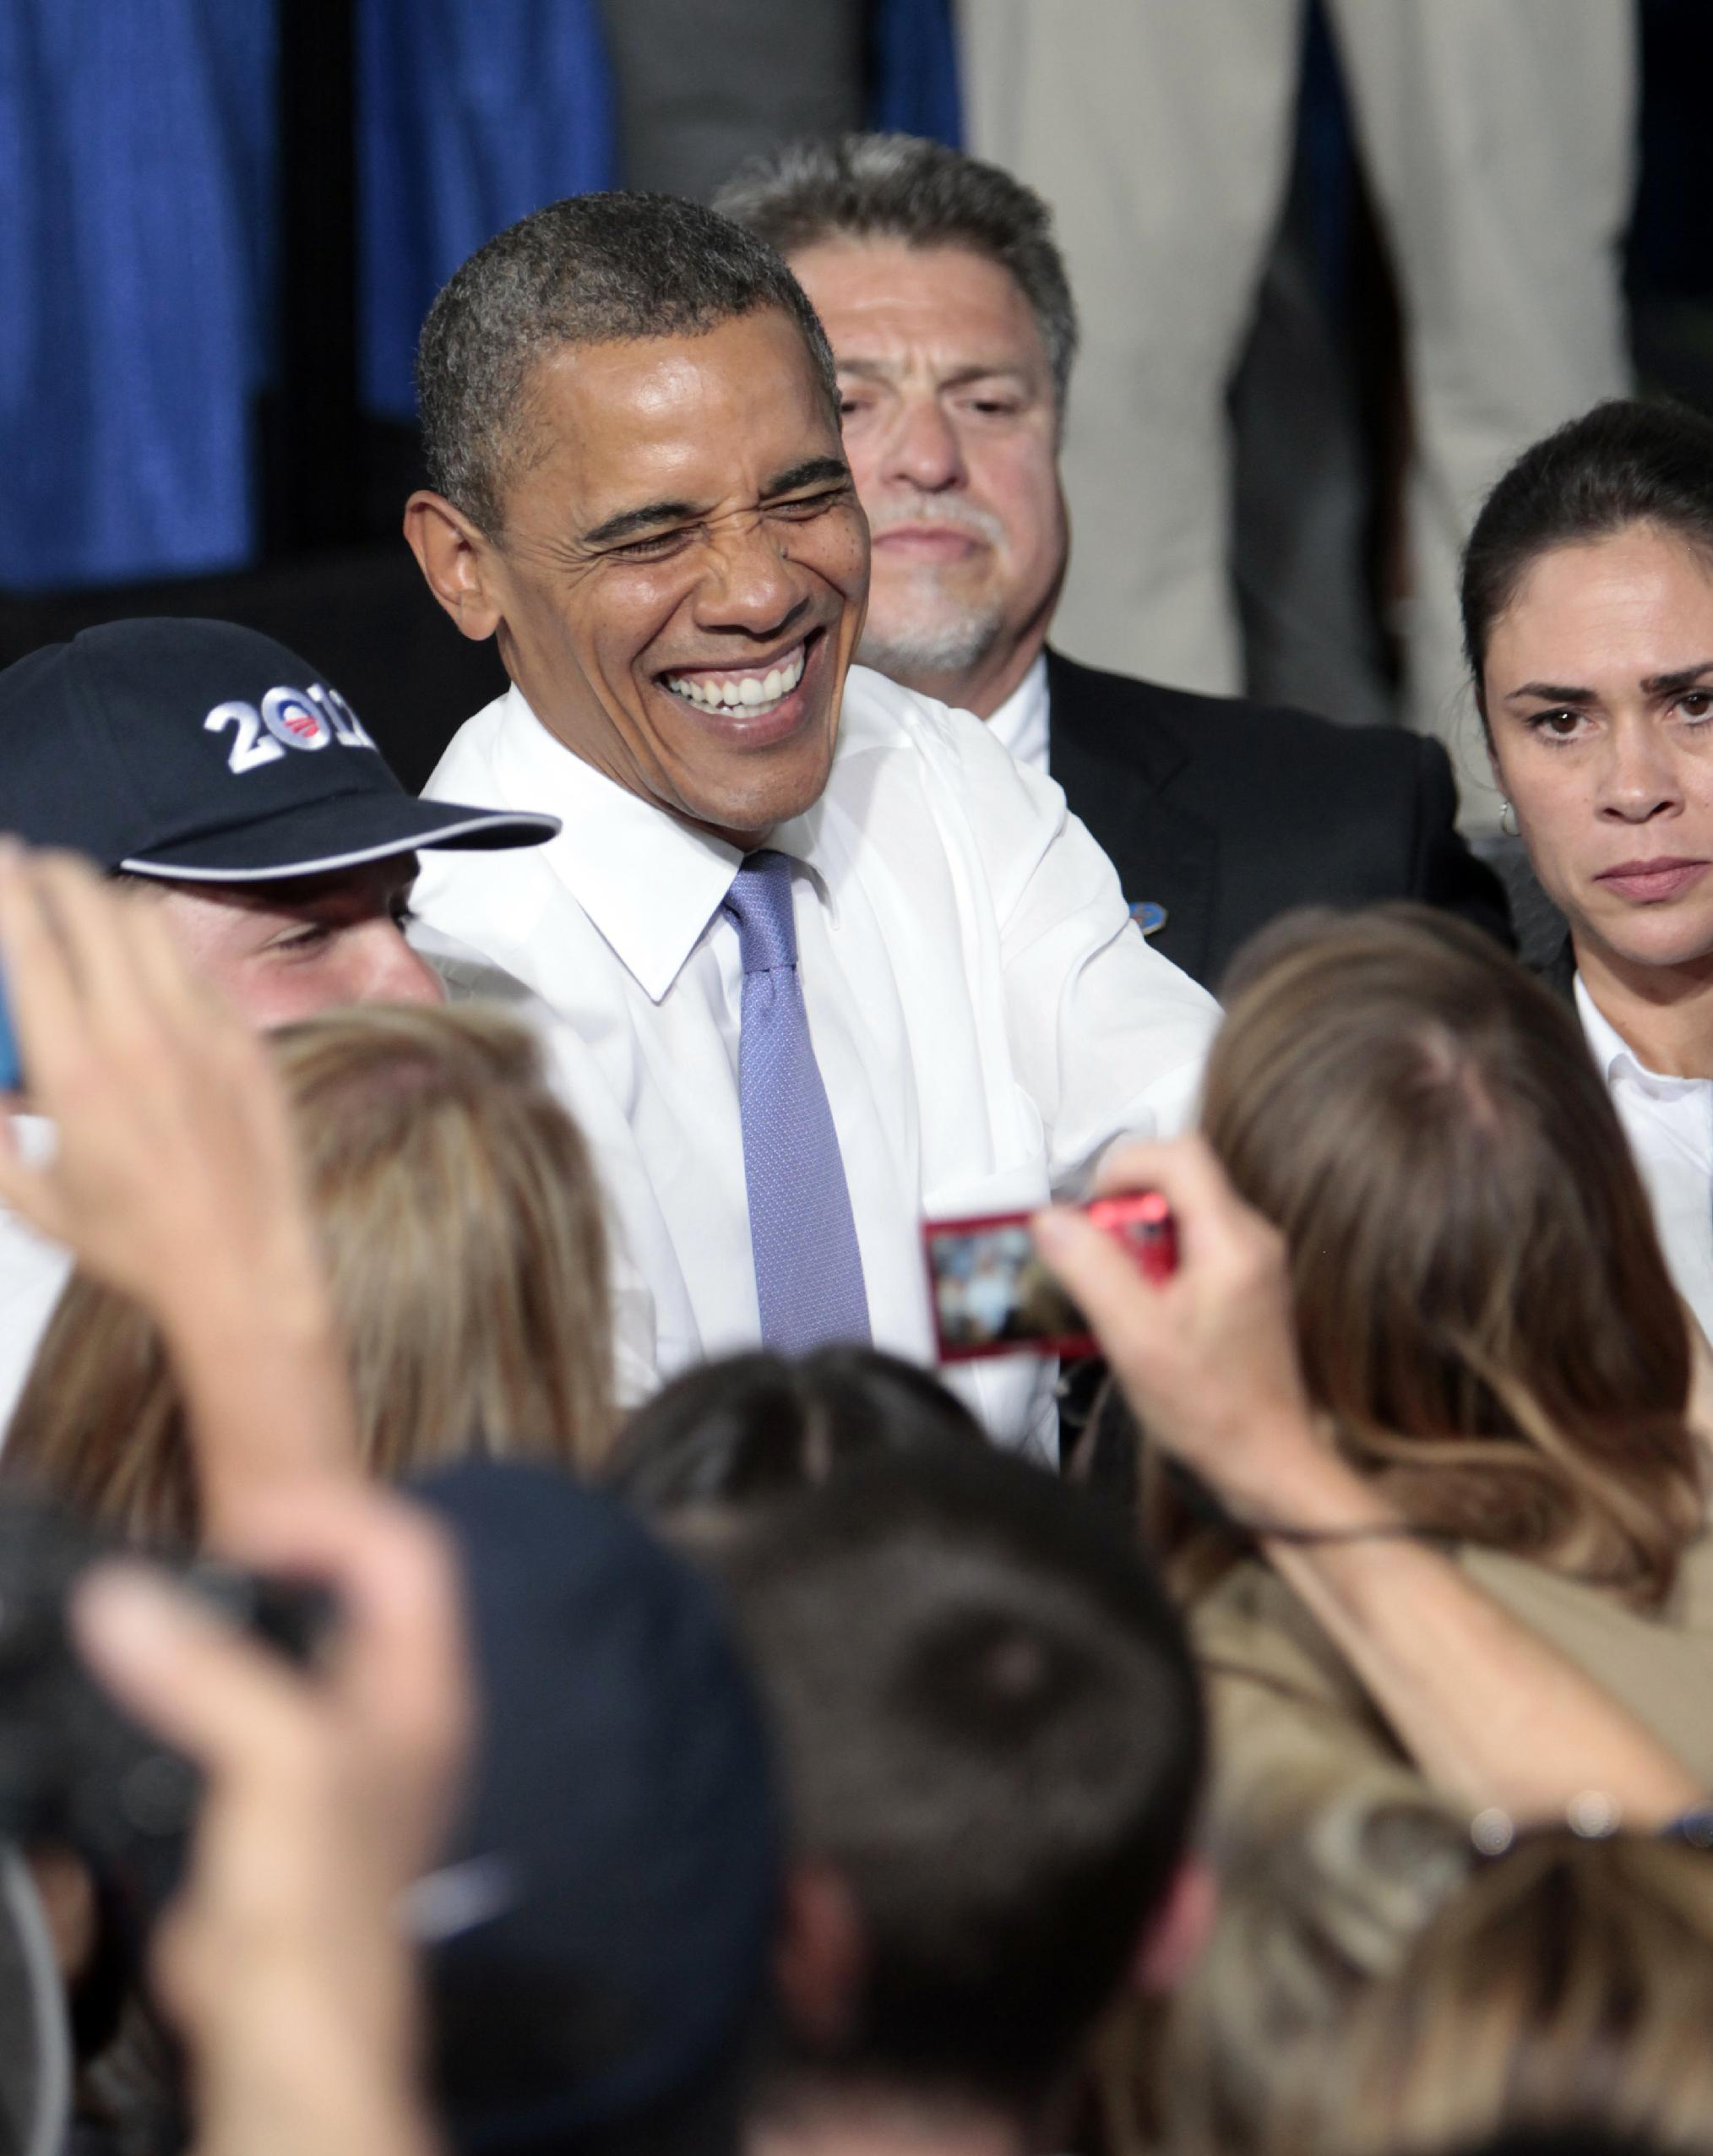 President Barack Obama laughs as he visits with supporters following his campaign stop at the Truckee Meadows Community College in Reno, Nev., Tuesday, Aug. 21, 2012. (AP Photo/Rich Pedroncelli)